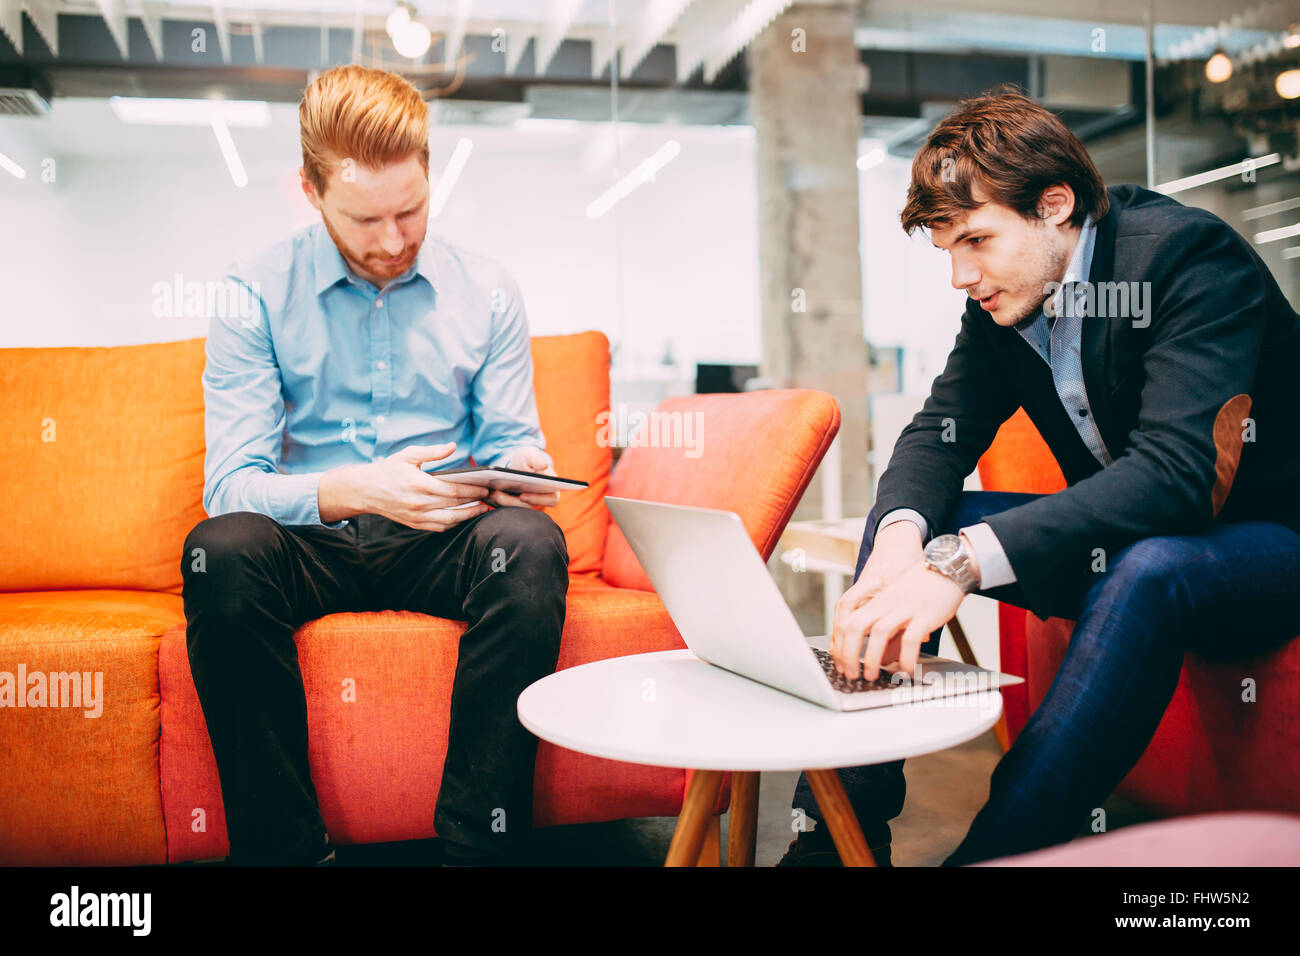 Business colleagues resting and talking during break - Stock Image